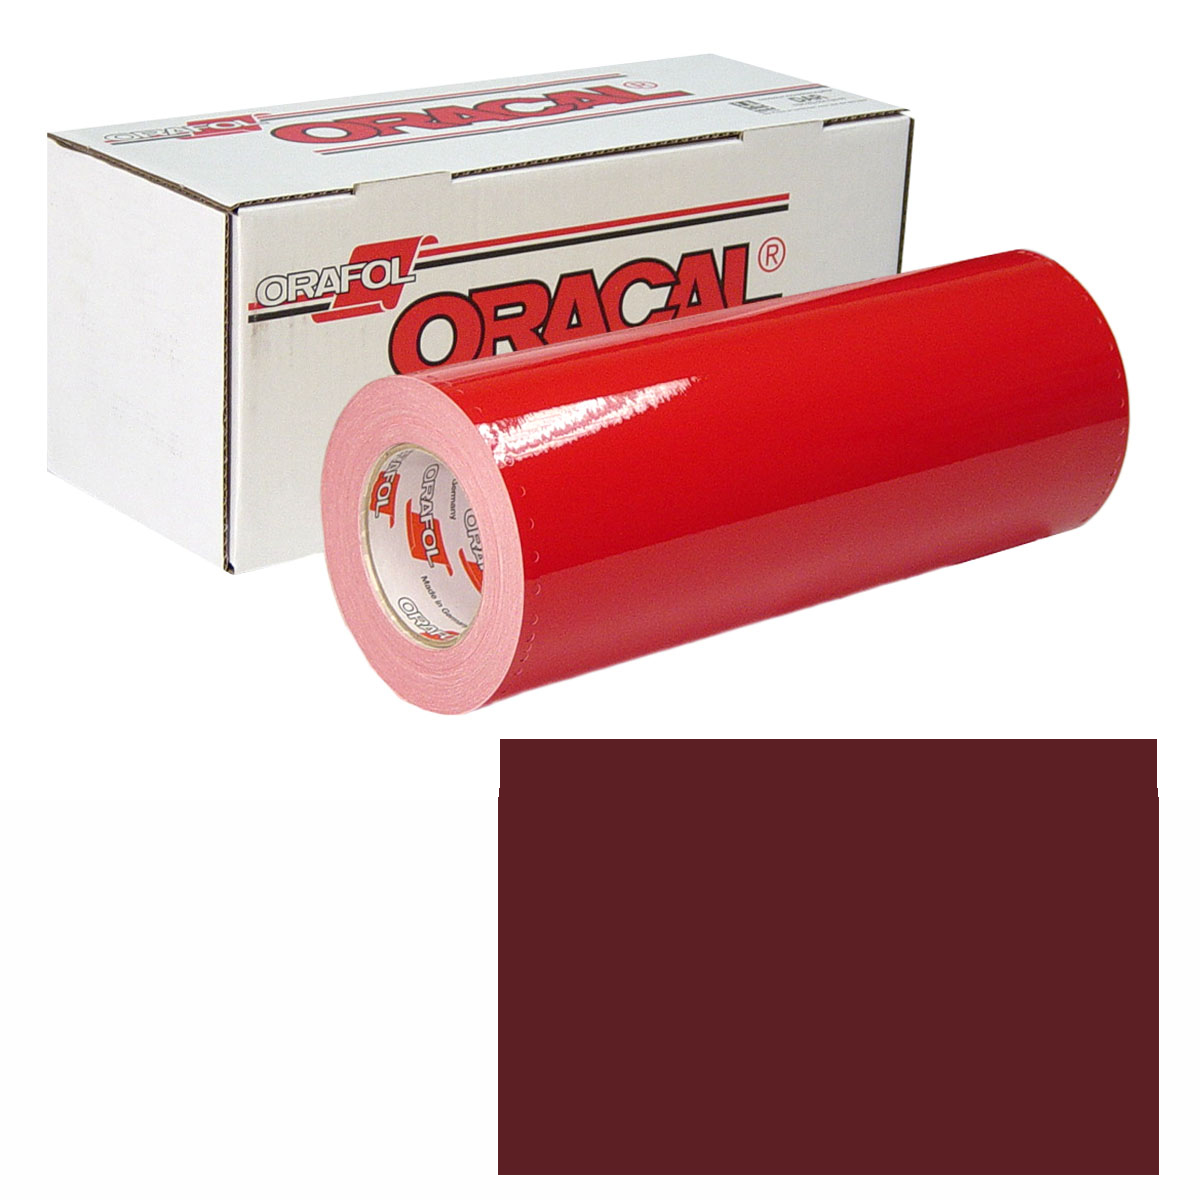 ORACAL 951M 30in X 50yd 369 Red Brown